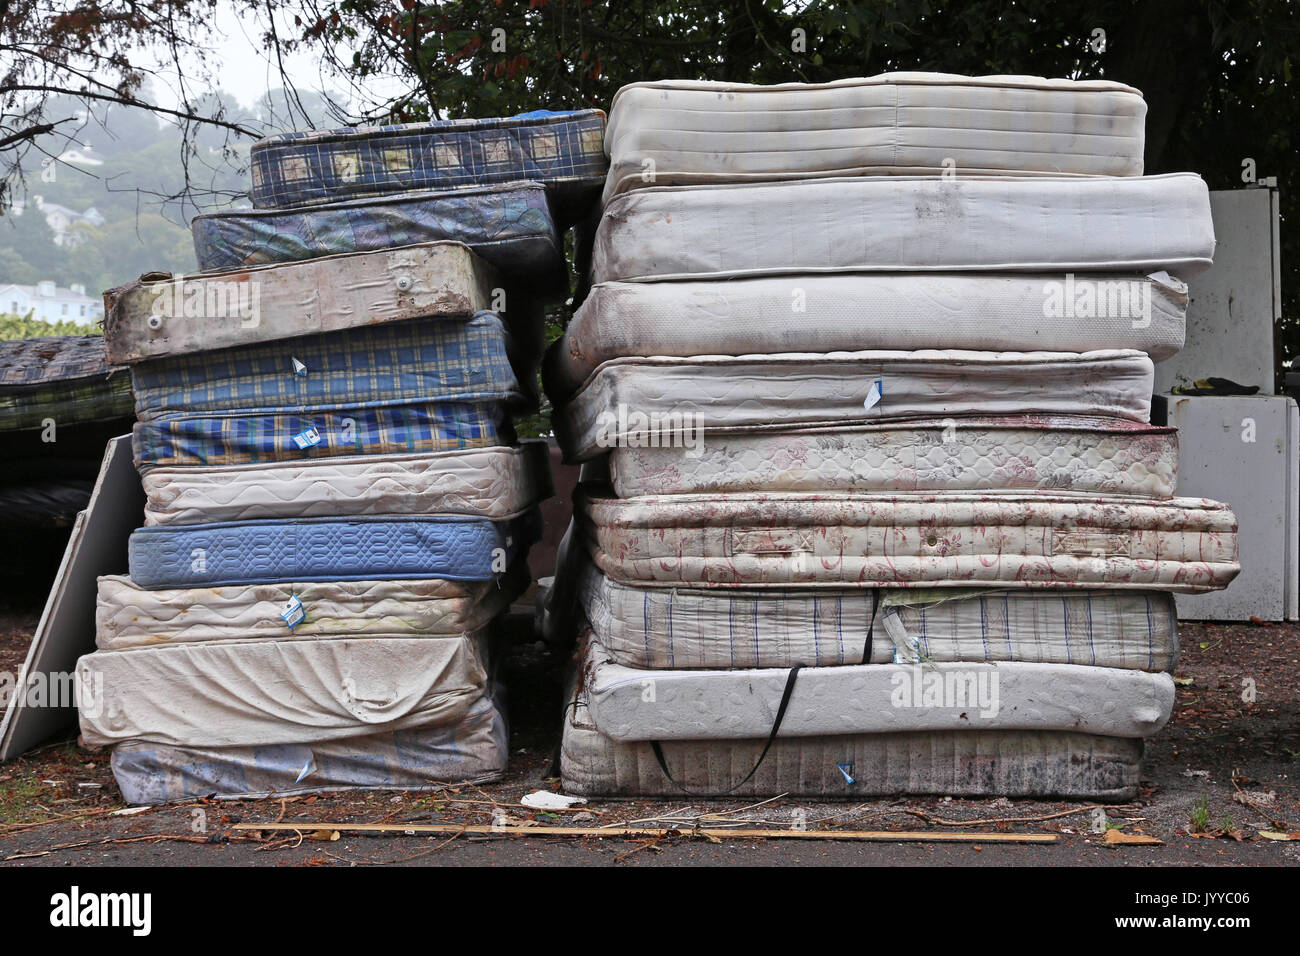 A stack of dirty mattresses are piled up on a roadside in Devon, UK - Stock Image